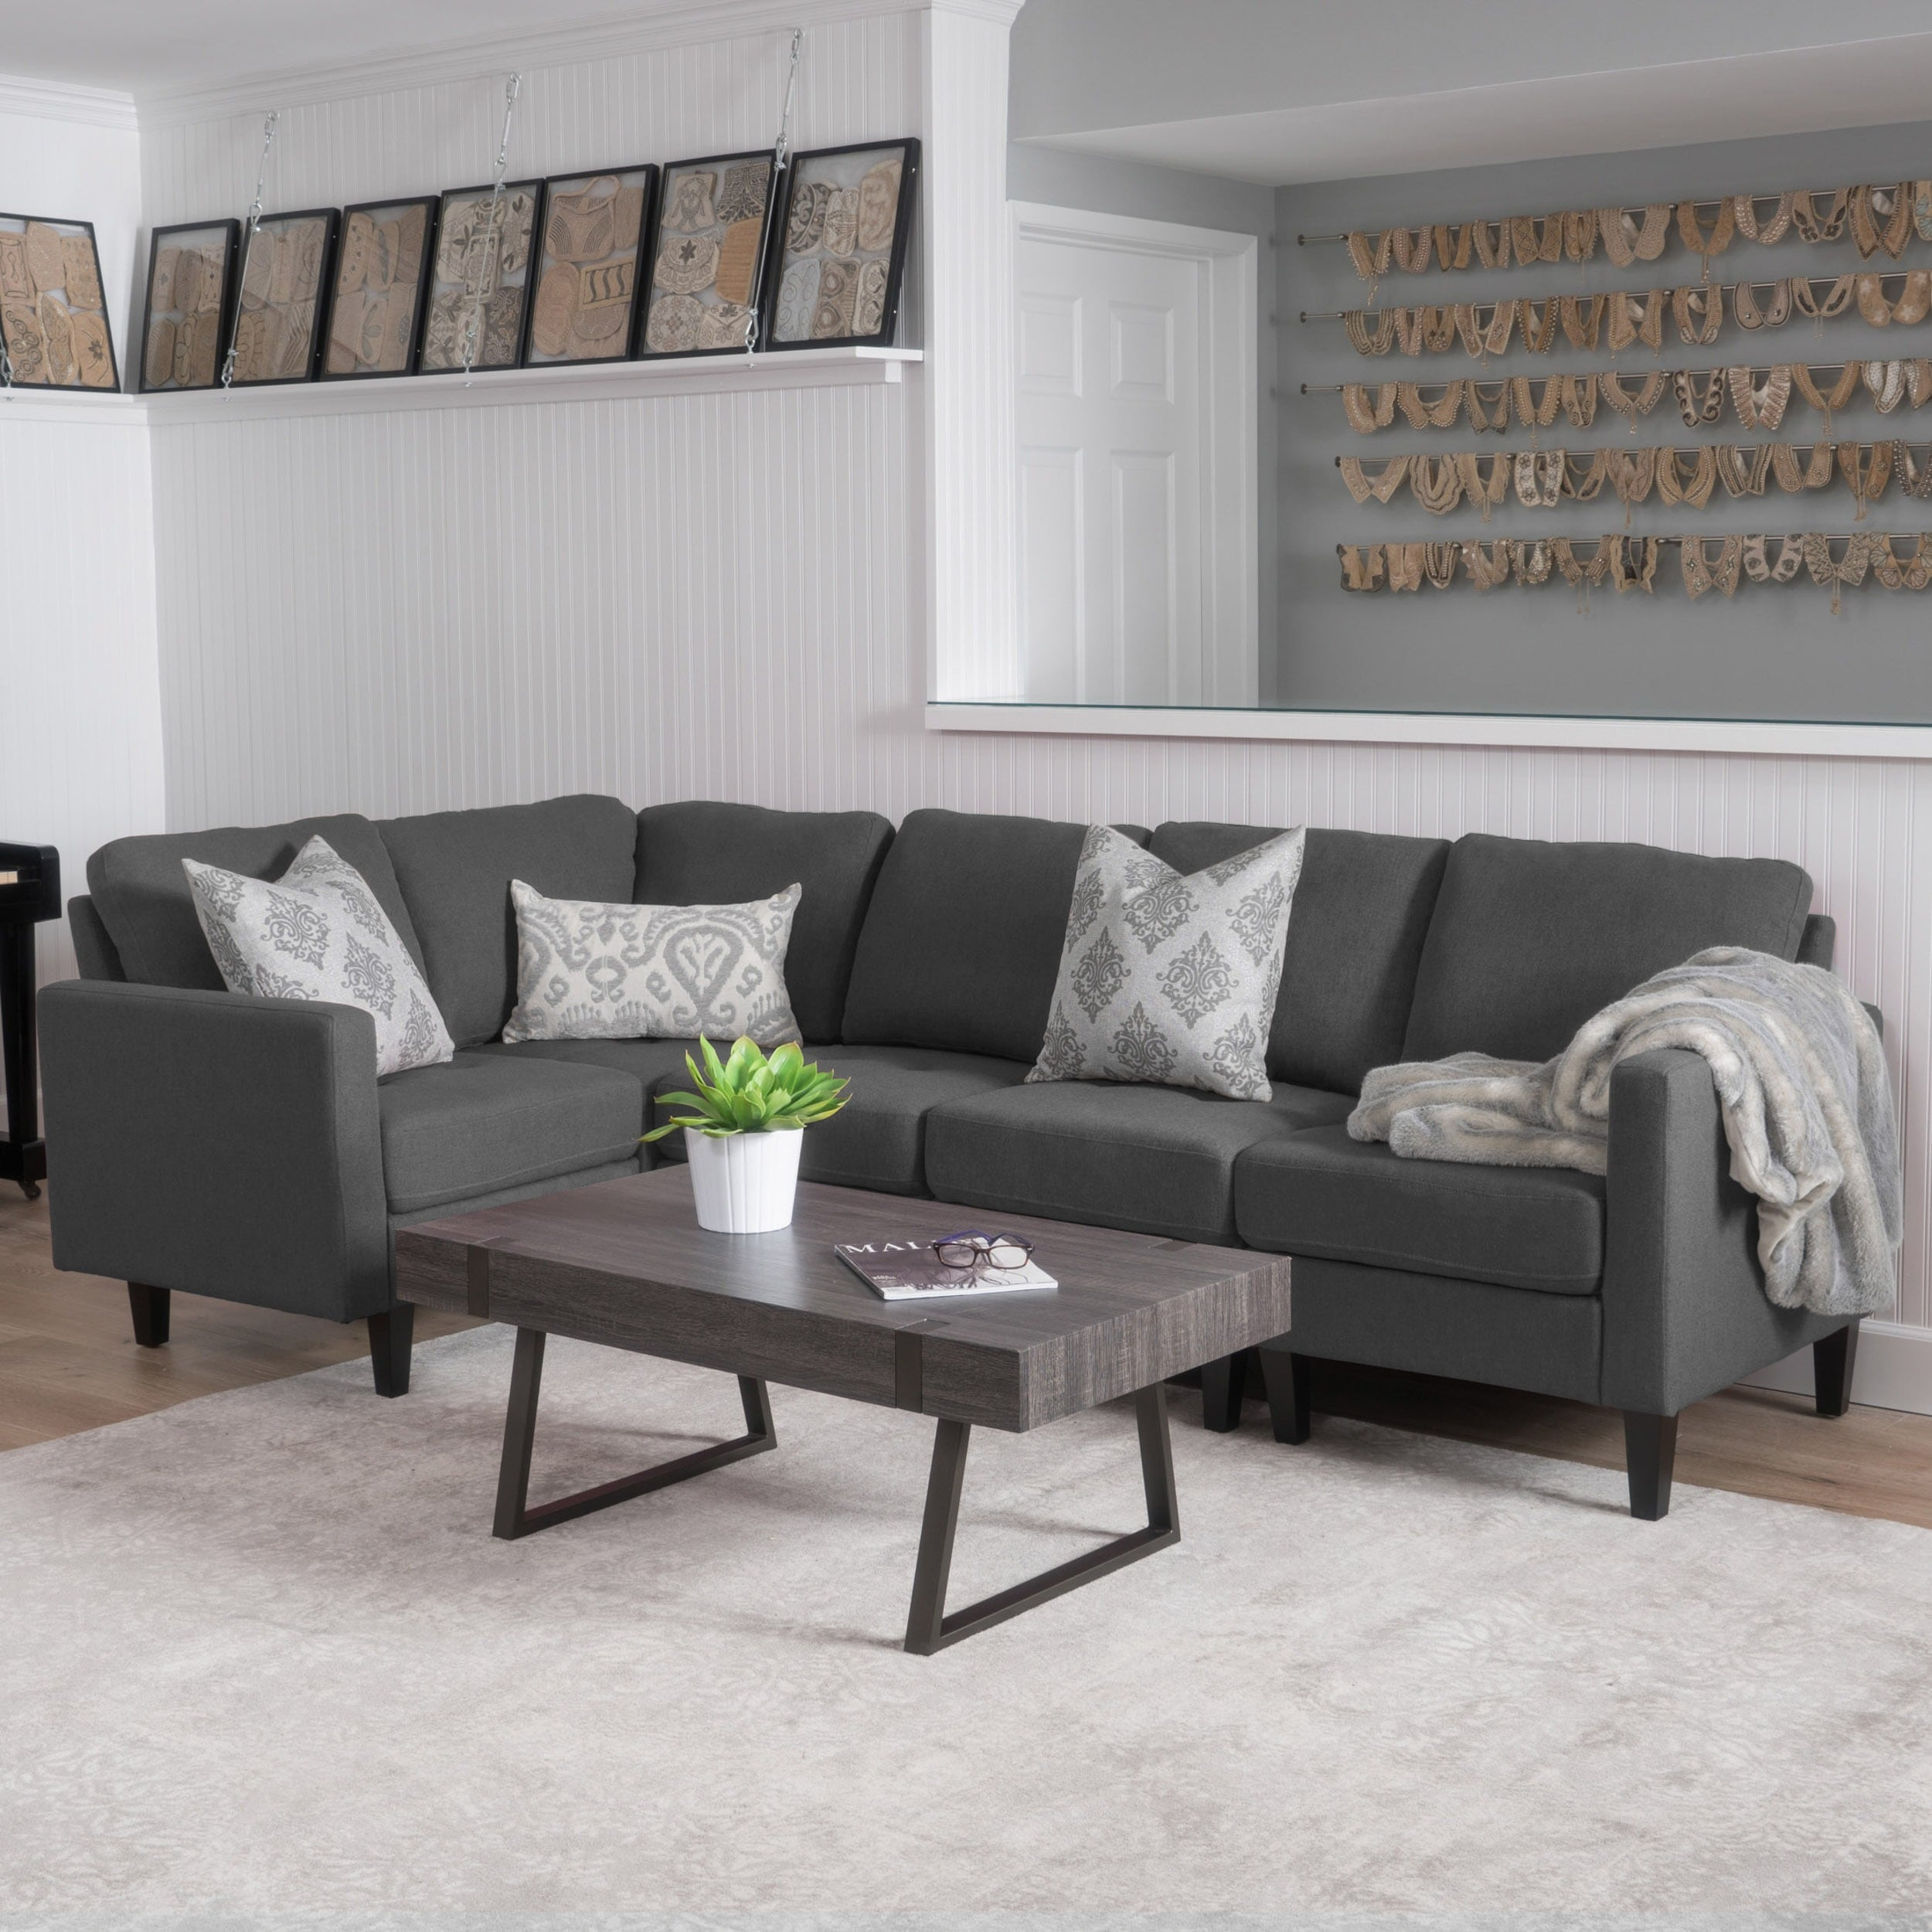 Sofas And Stuff Reviews Zahra 5 Piece Fabric Sofa Sectional By Christopher Knight Home